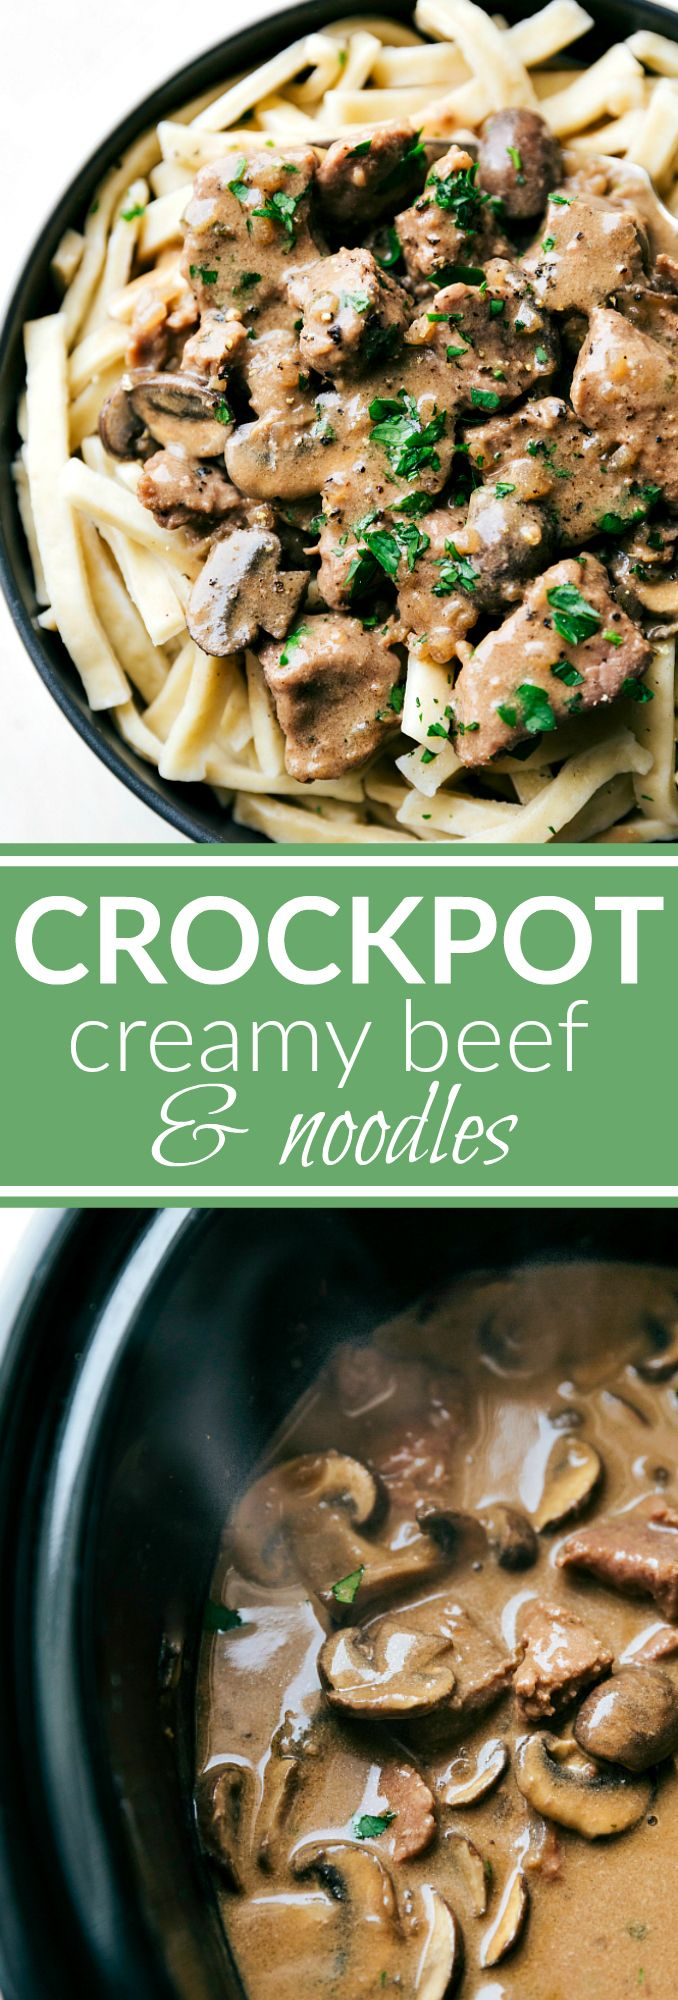 Crockpot Creamy Beef & Mushrooms Over Noodles #HomemadeGoodness #Reames #ad